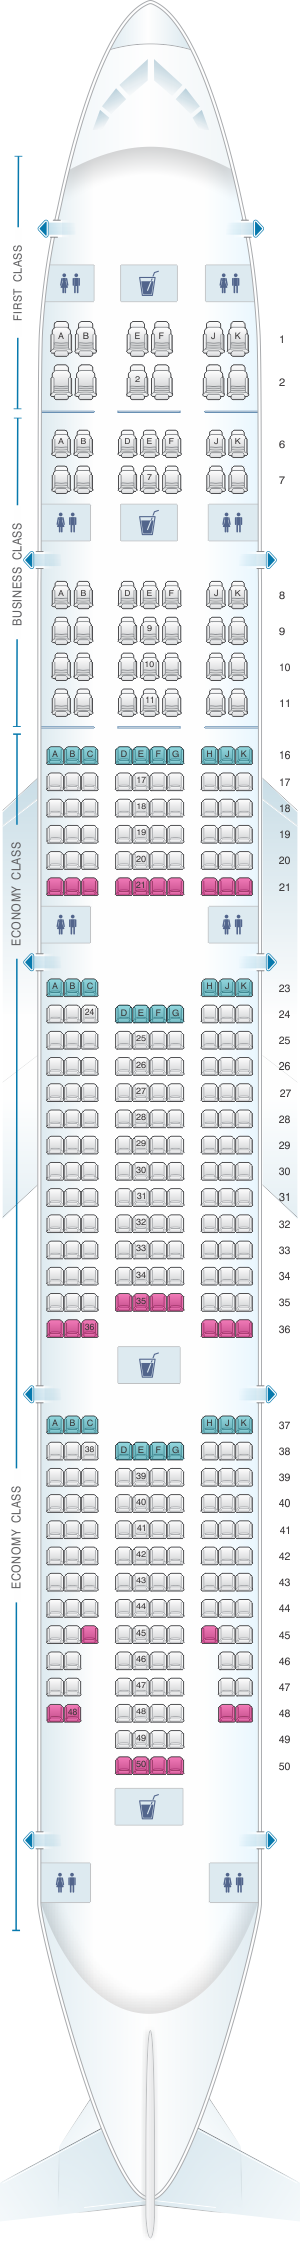 Seat map for Emirates Boeing B777 300ER (three class)